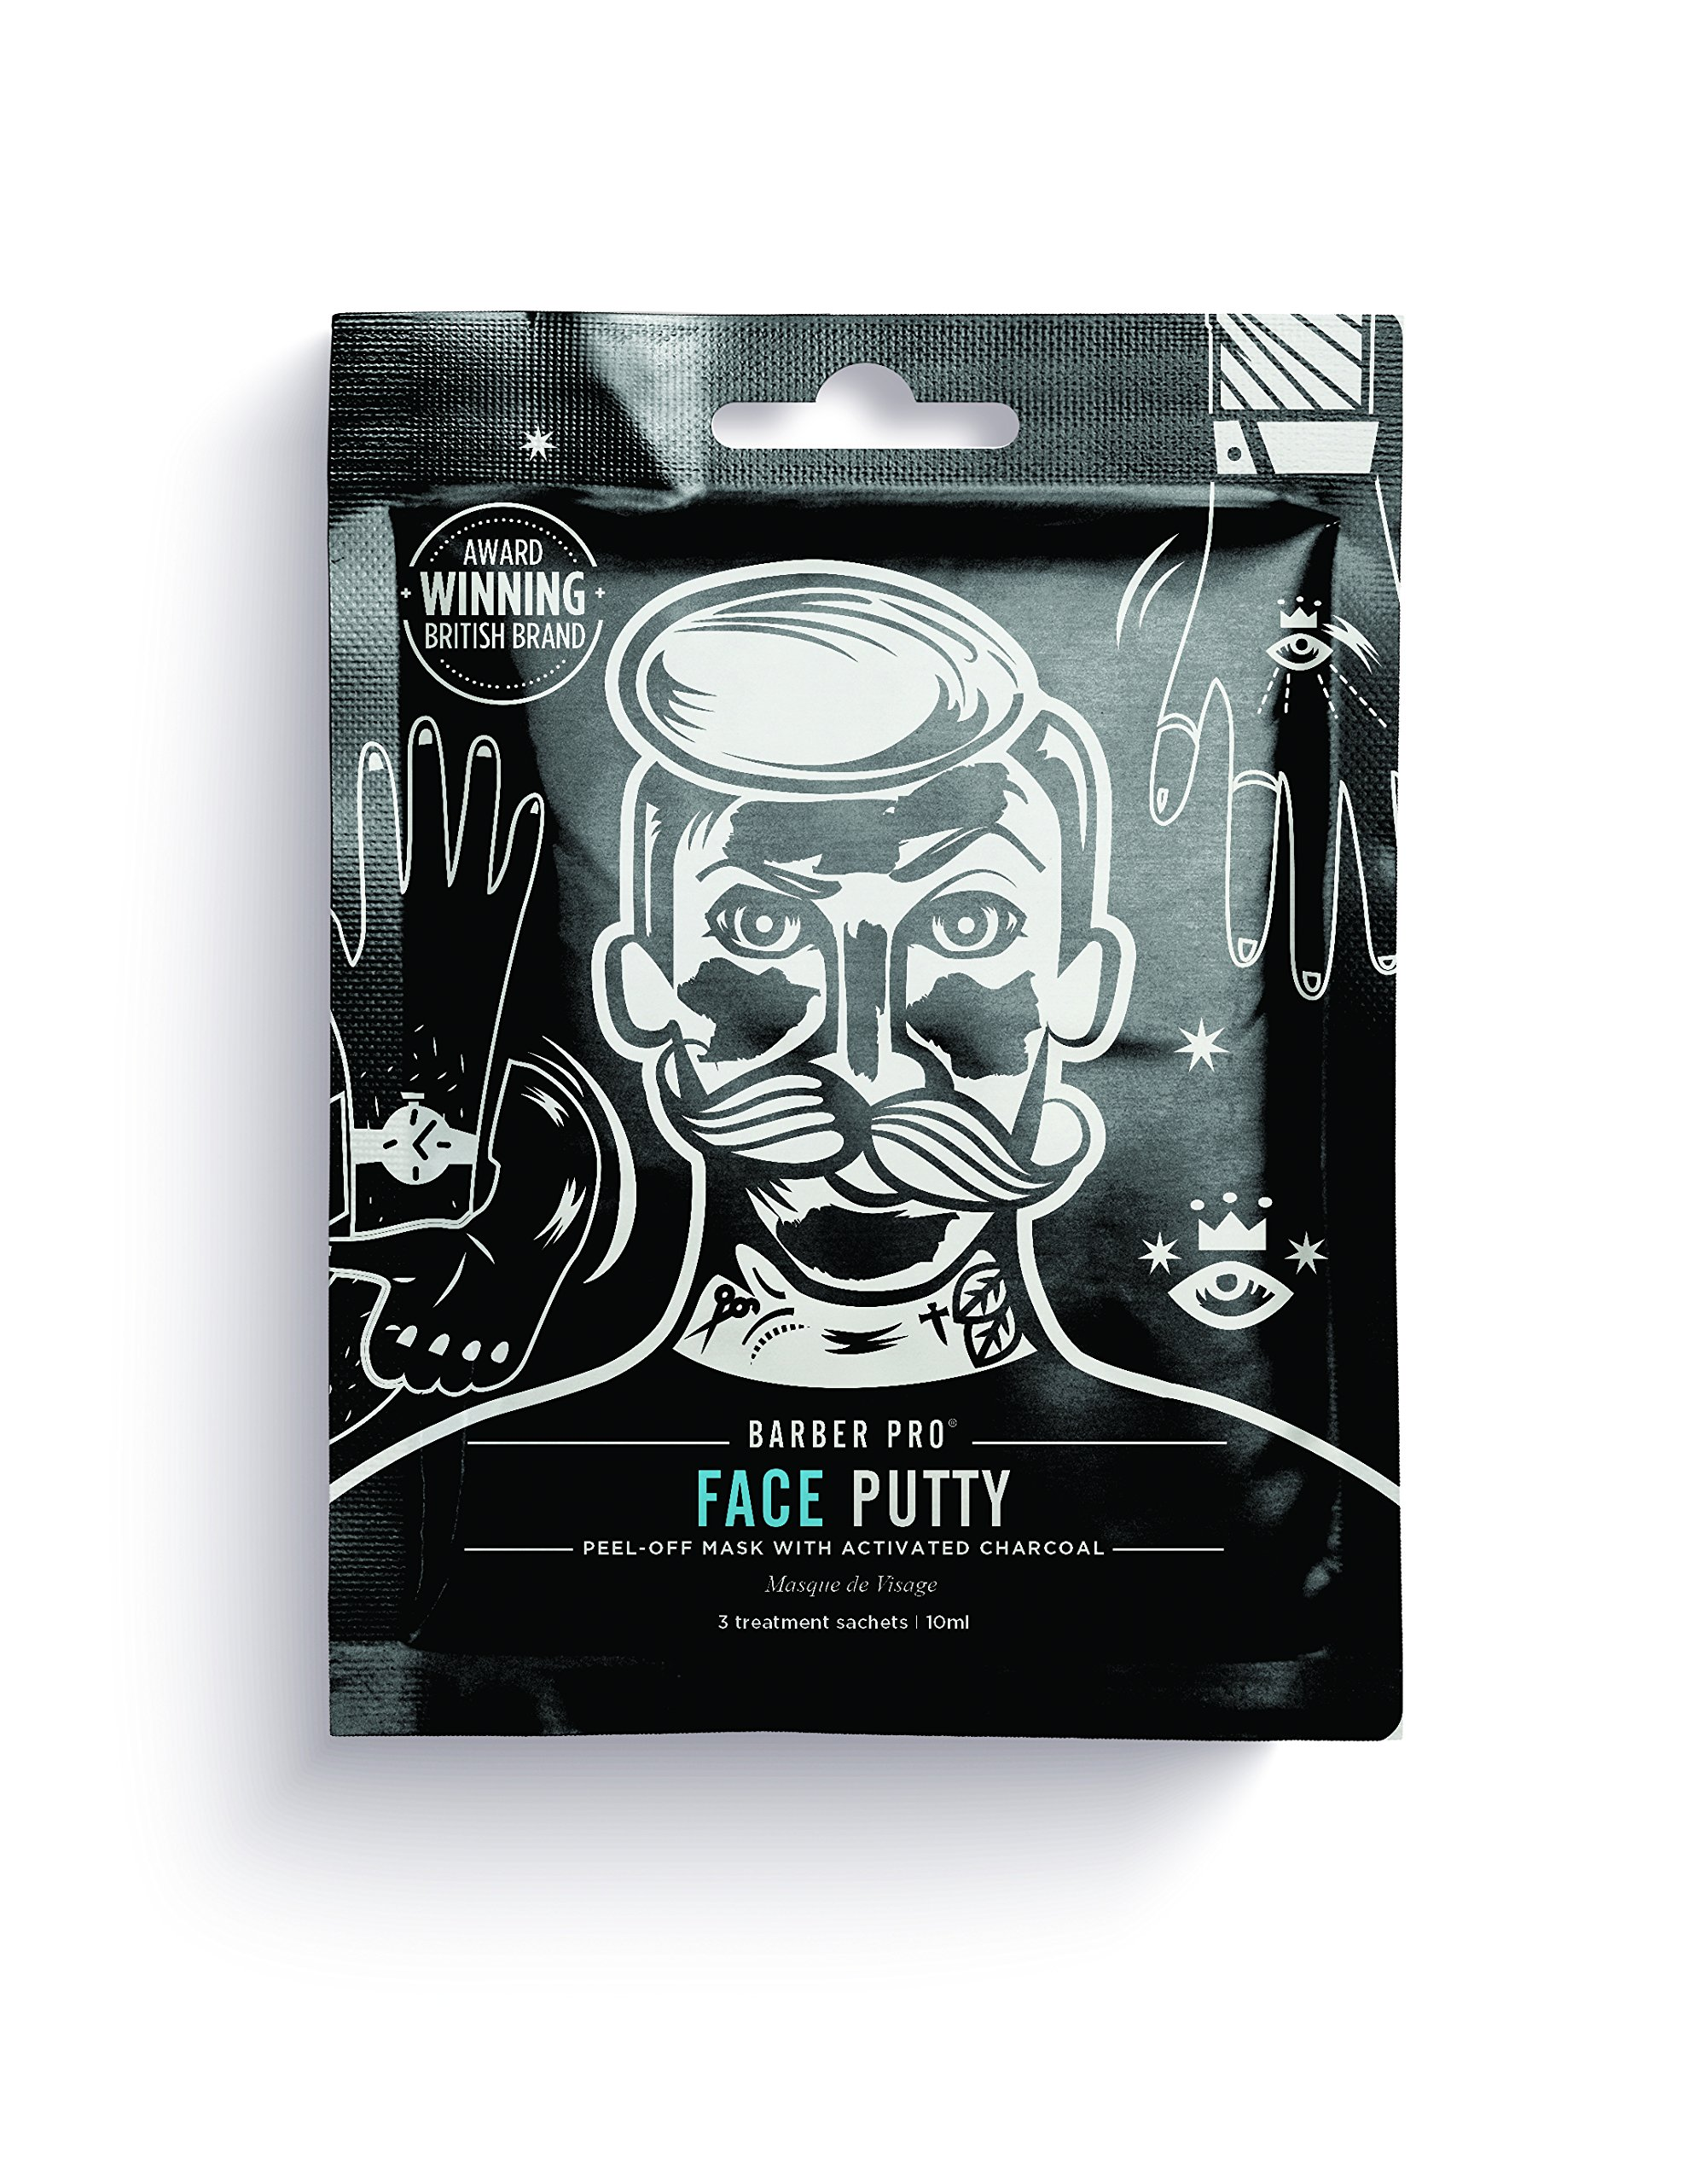 BARBER PRO FACE PUTTY black peel-off mask with activated charcoal